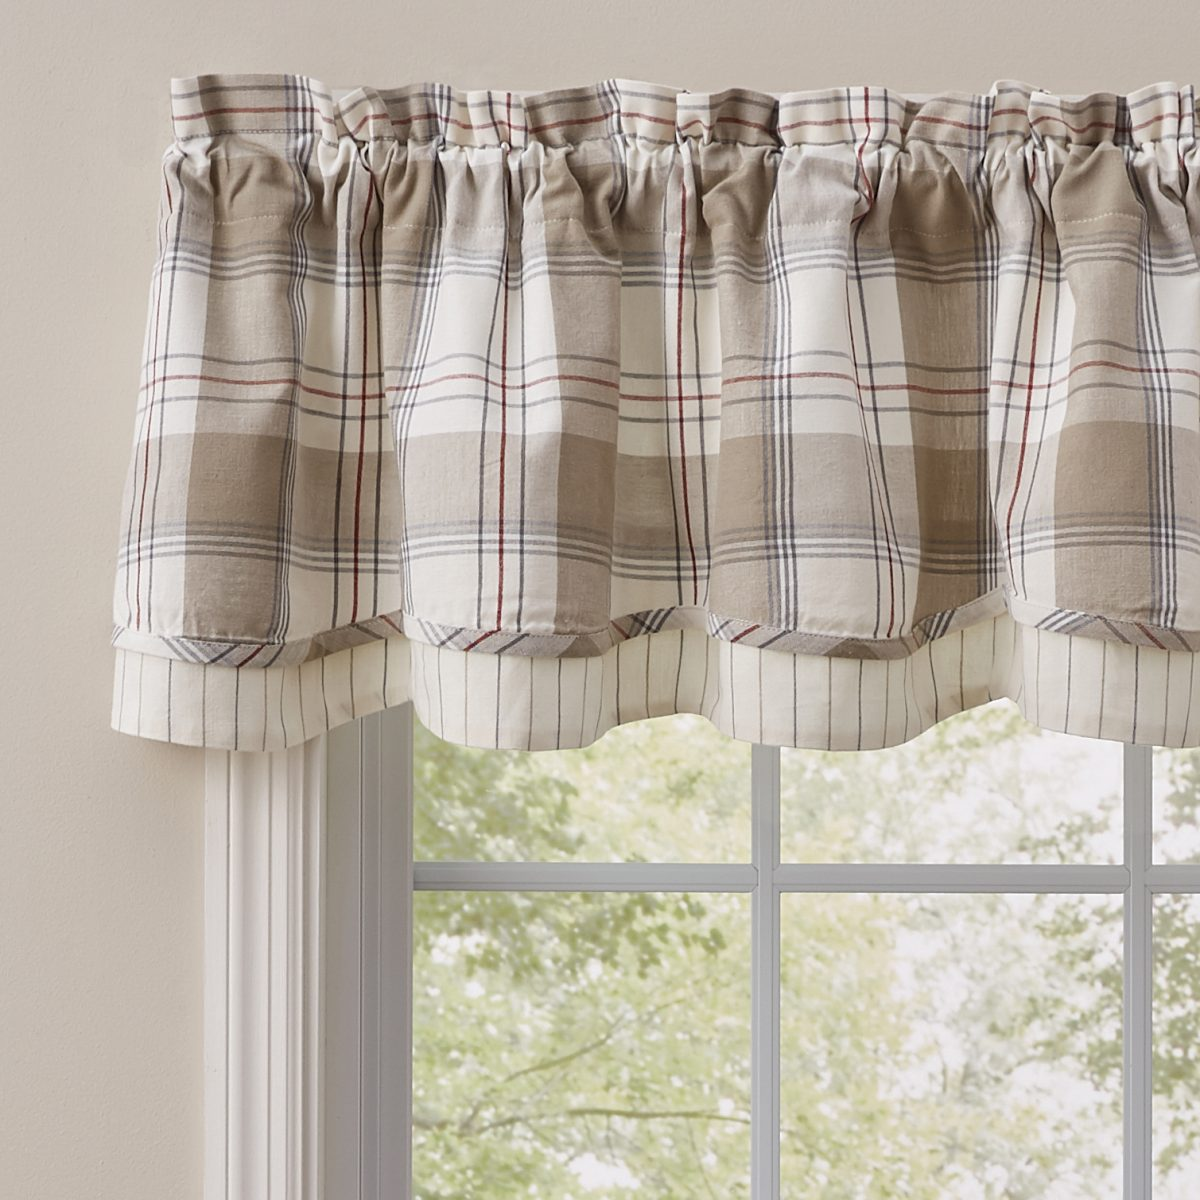 Landen Lined Layered Valance Piper Classics